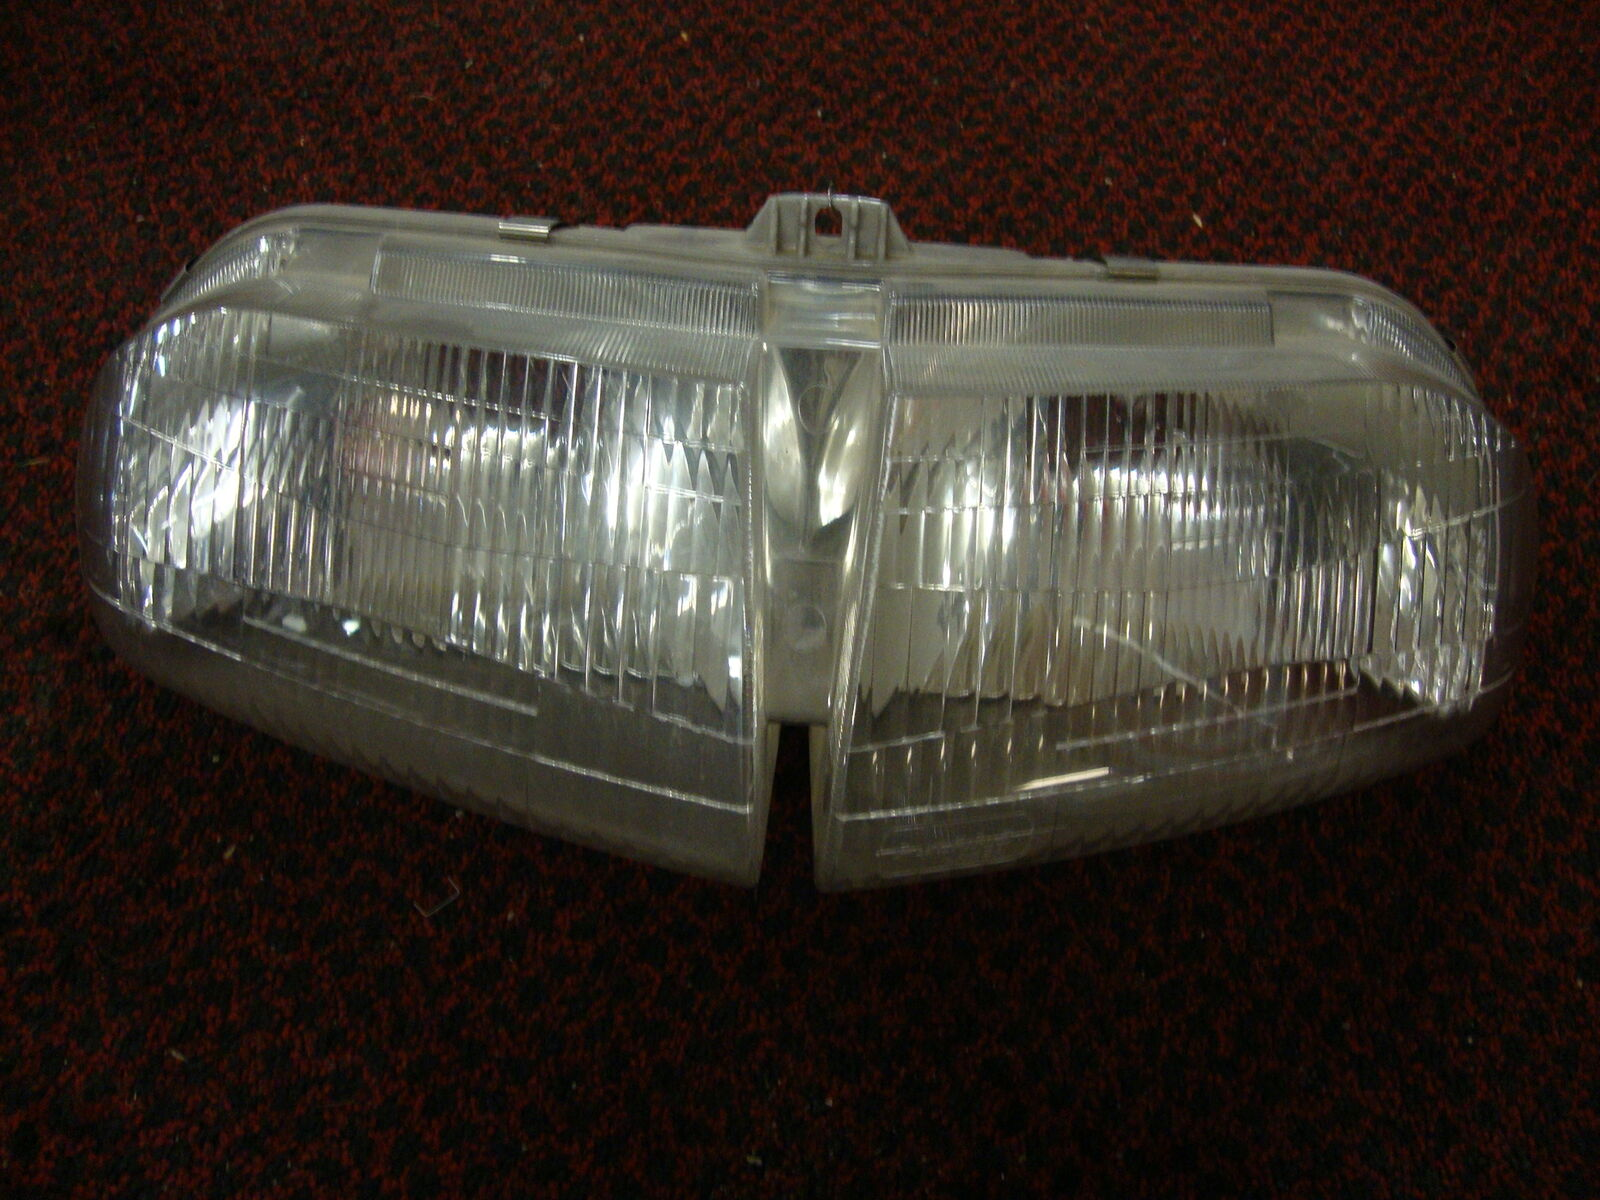 1999 Polaris XCR 800 FRONT HEAD LIGHT LAMP HEADLIGHT 2431009